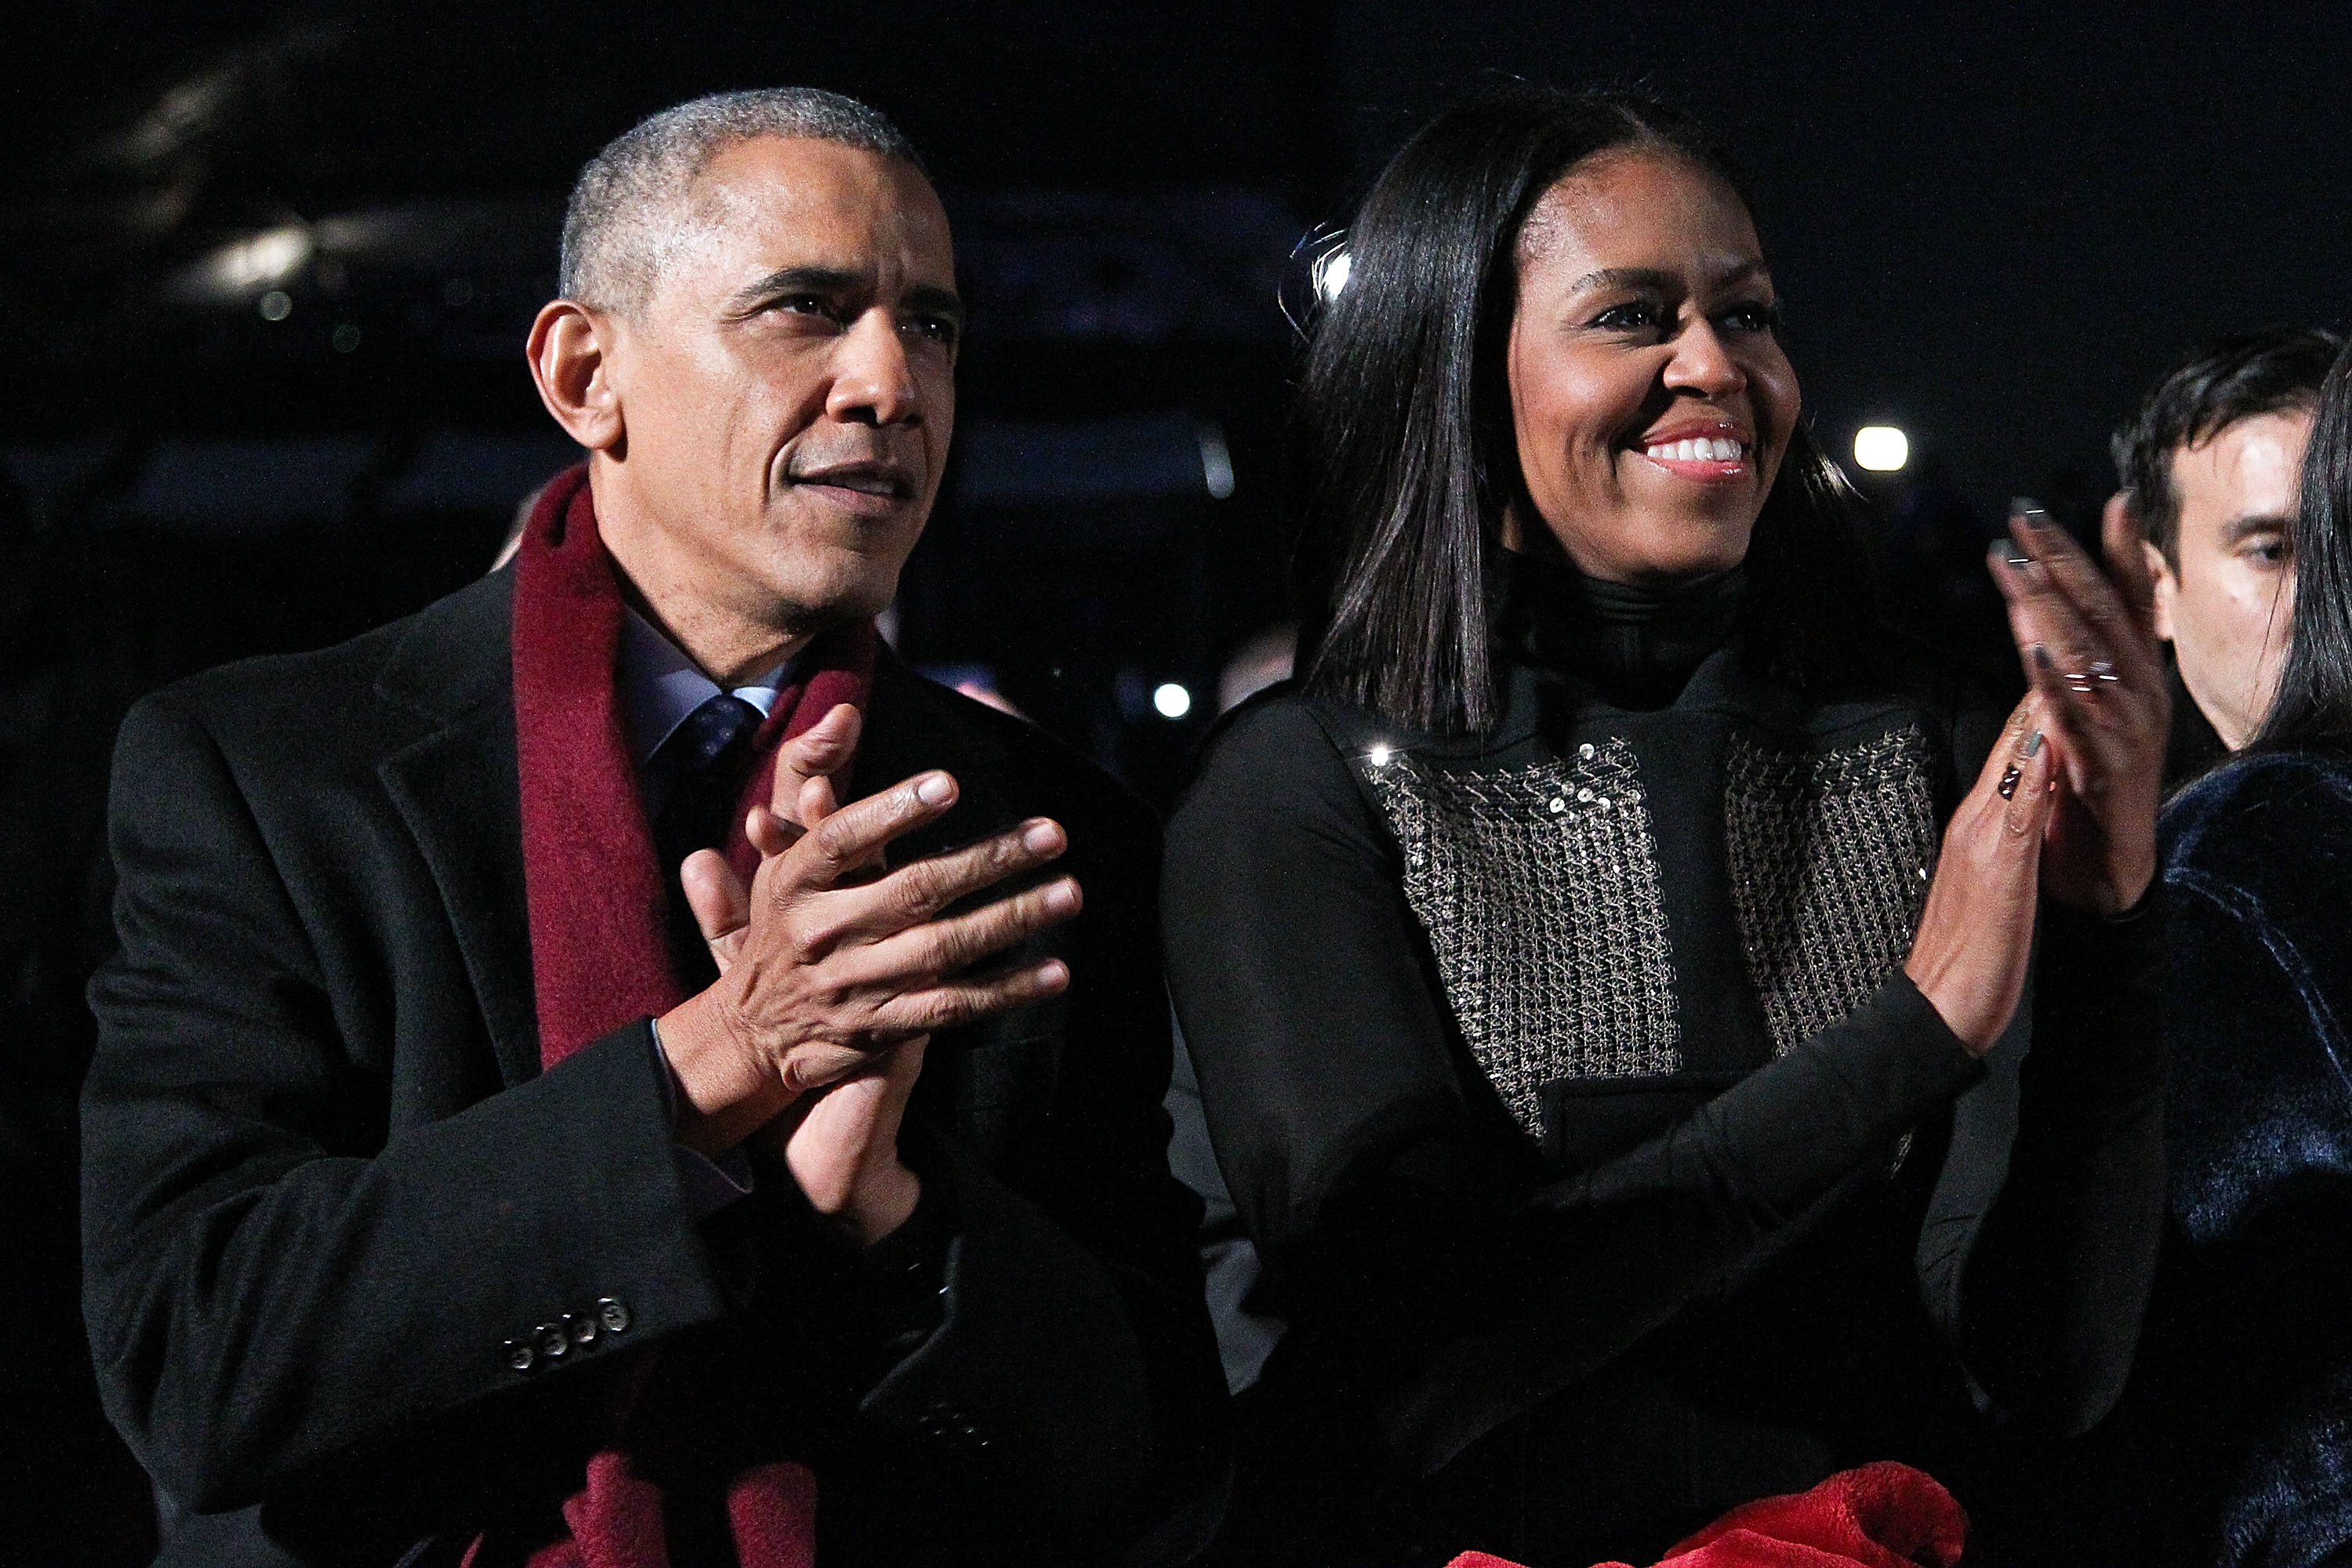 WASHINGTON, DC - DEC. 1 2016:  President Barack Obama sits with first lady Michelle Obama to watch musical performances during the 94th Annual National Christmas Tree Lighting Ceremony